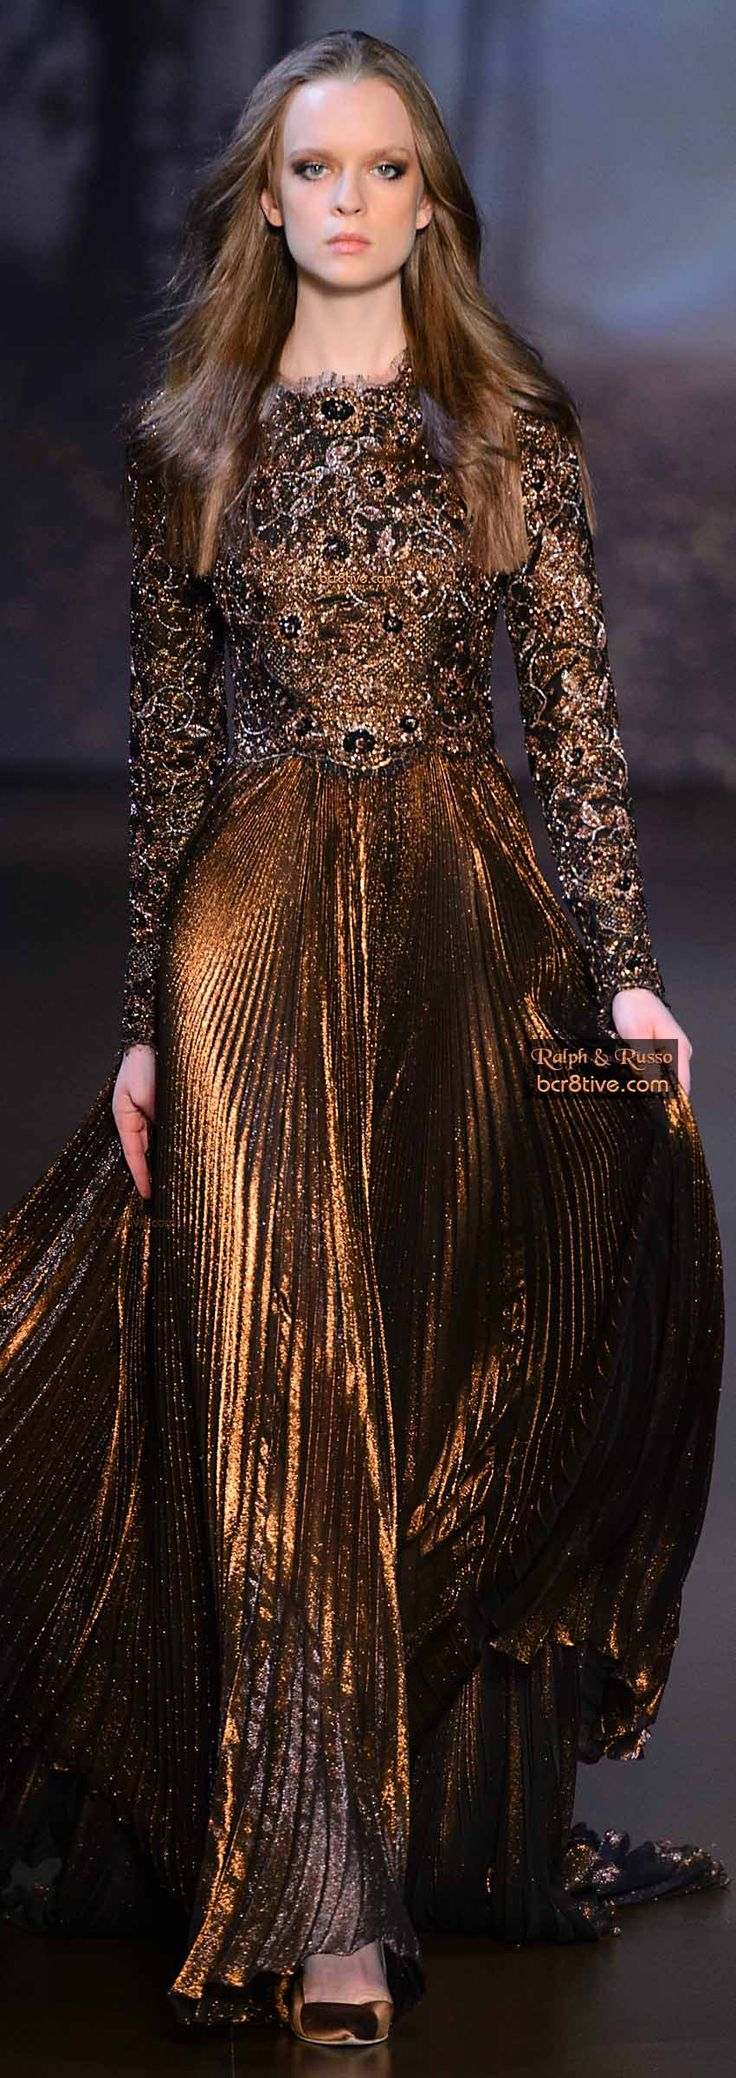 Ralph & Russo Couture Fall 2015-16